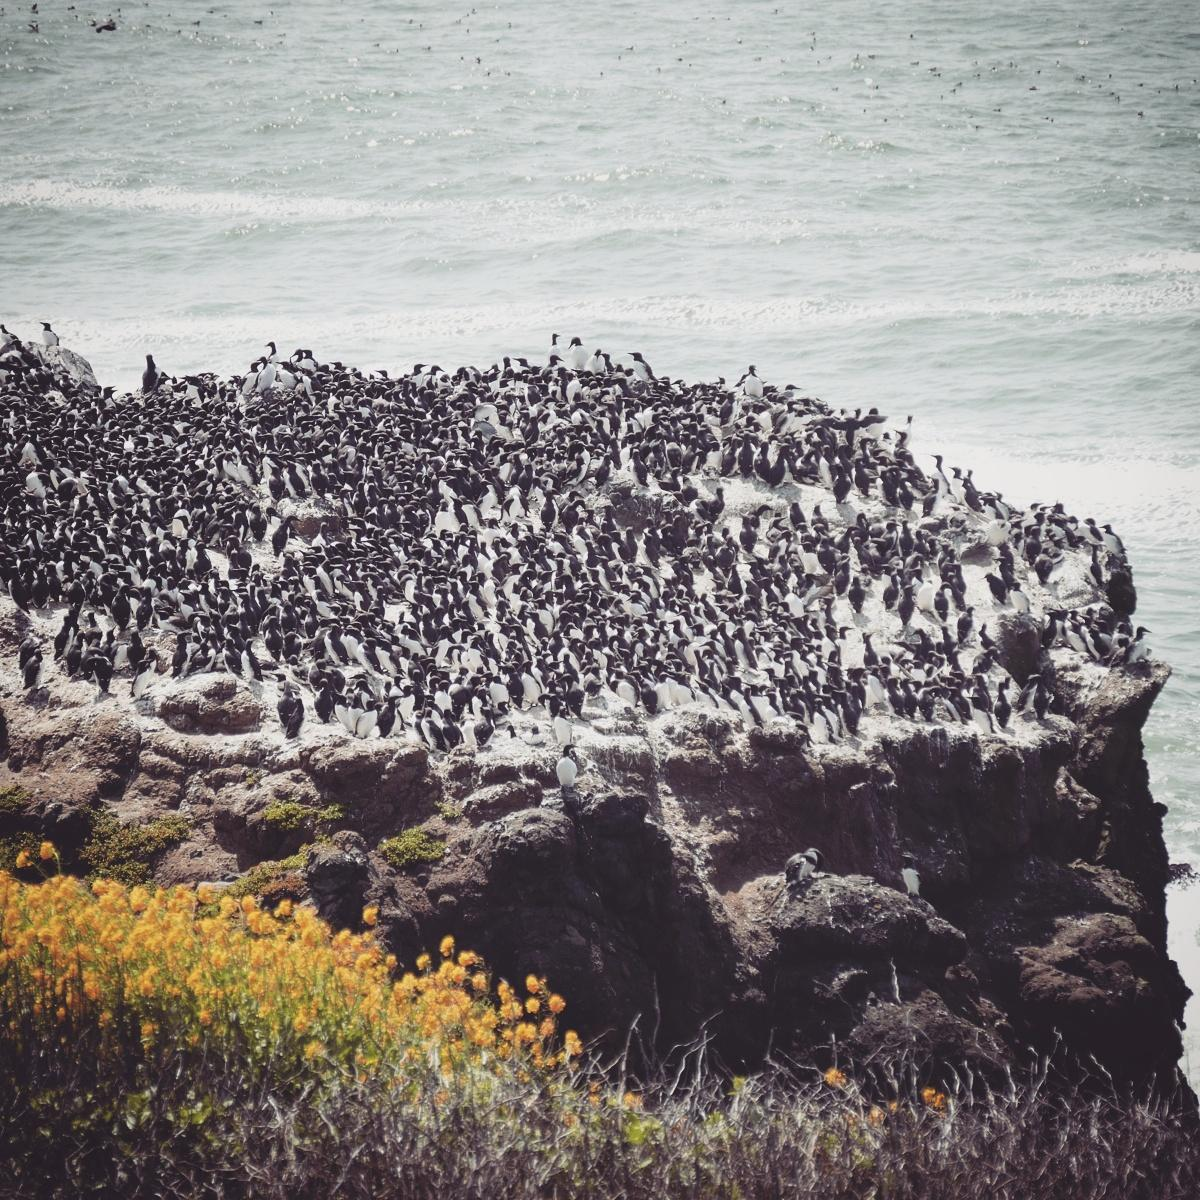 Thousands of nesting Common Murres crowd a rock at Yaquina Head. Noah Strycker